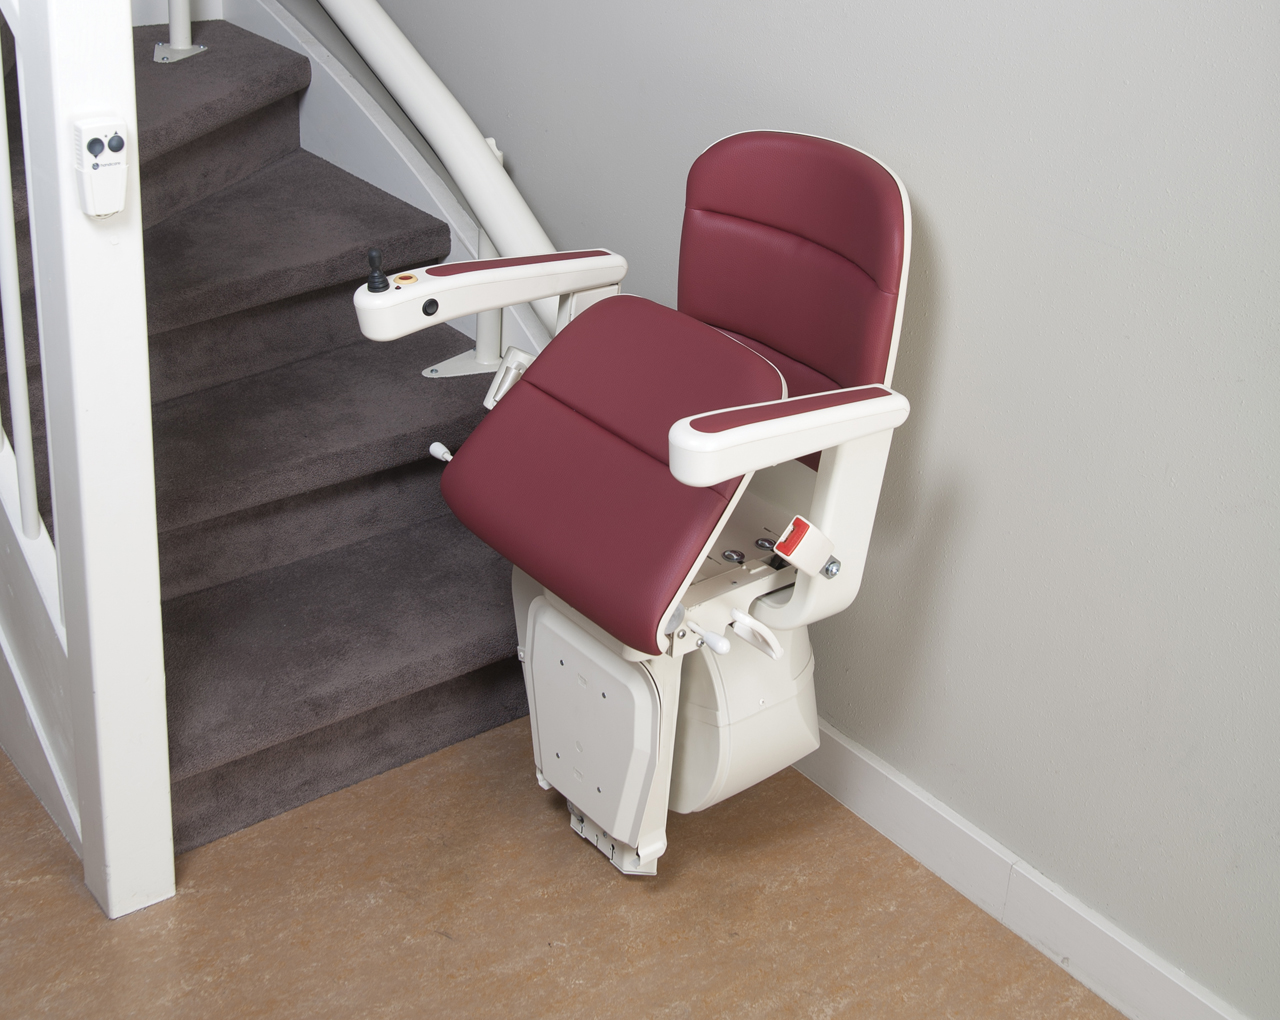 Treppenlift Handicare Rembrandt Stylish Curved Stairlifts With A Single Rail By Xpress Lifts